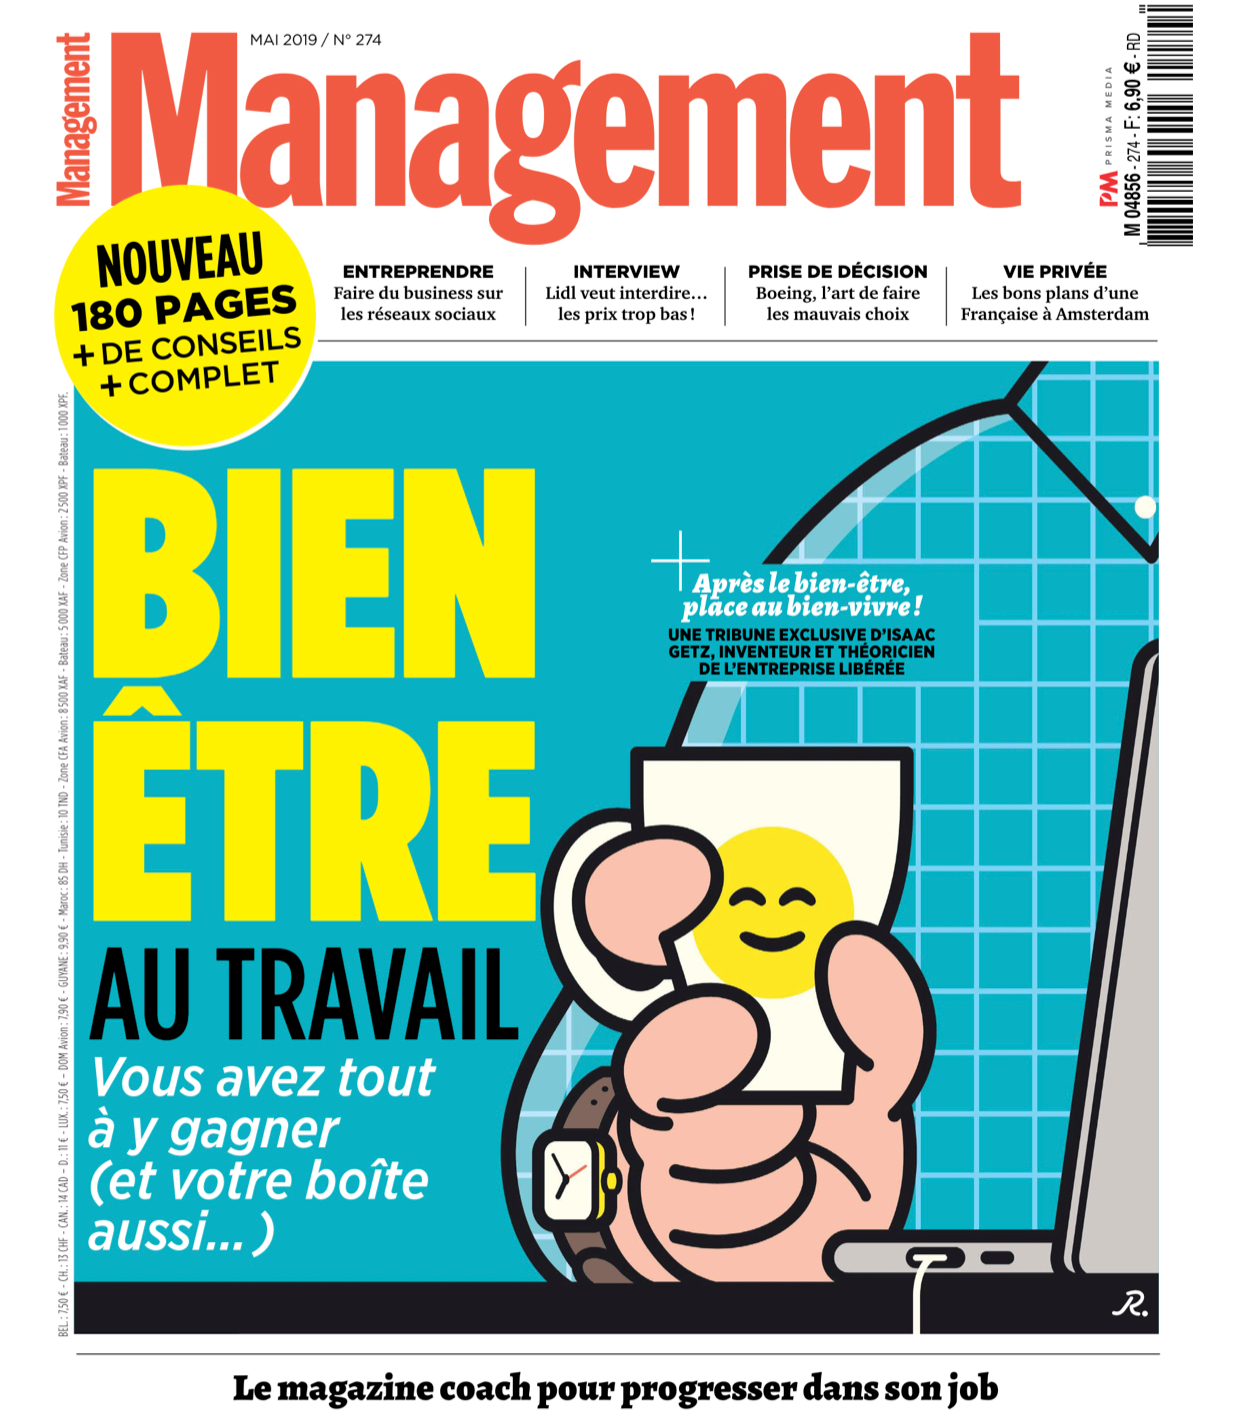 Editorial couverture magazine managment mai 2019